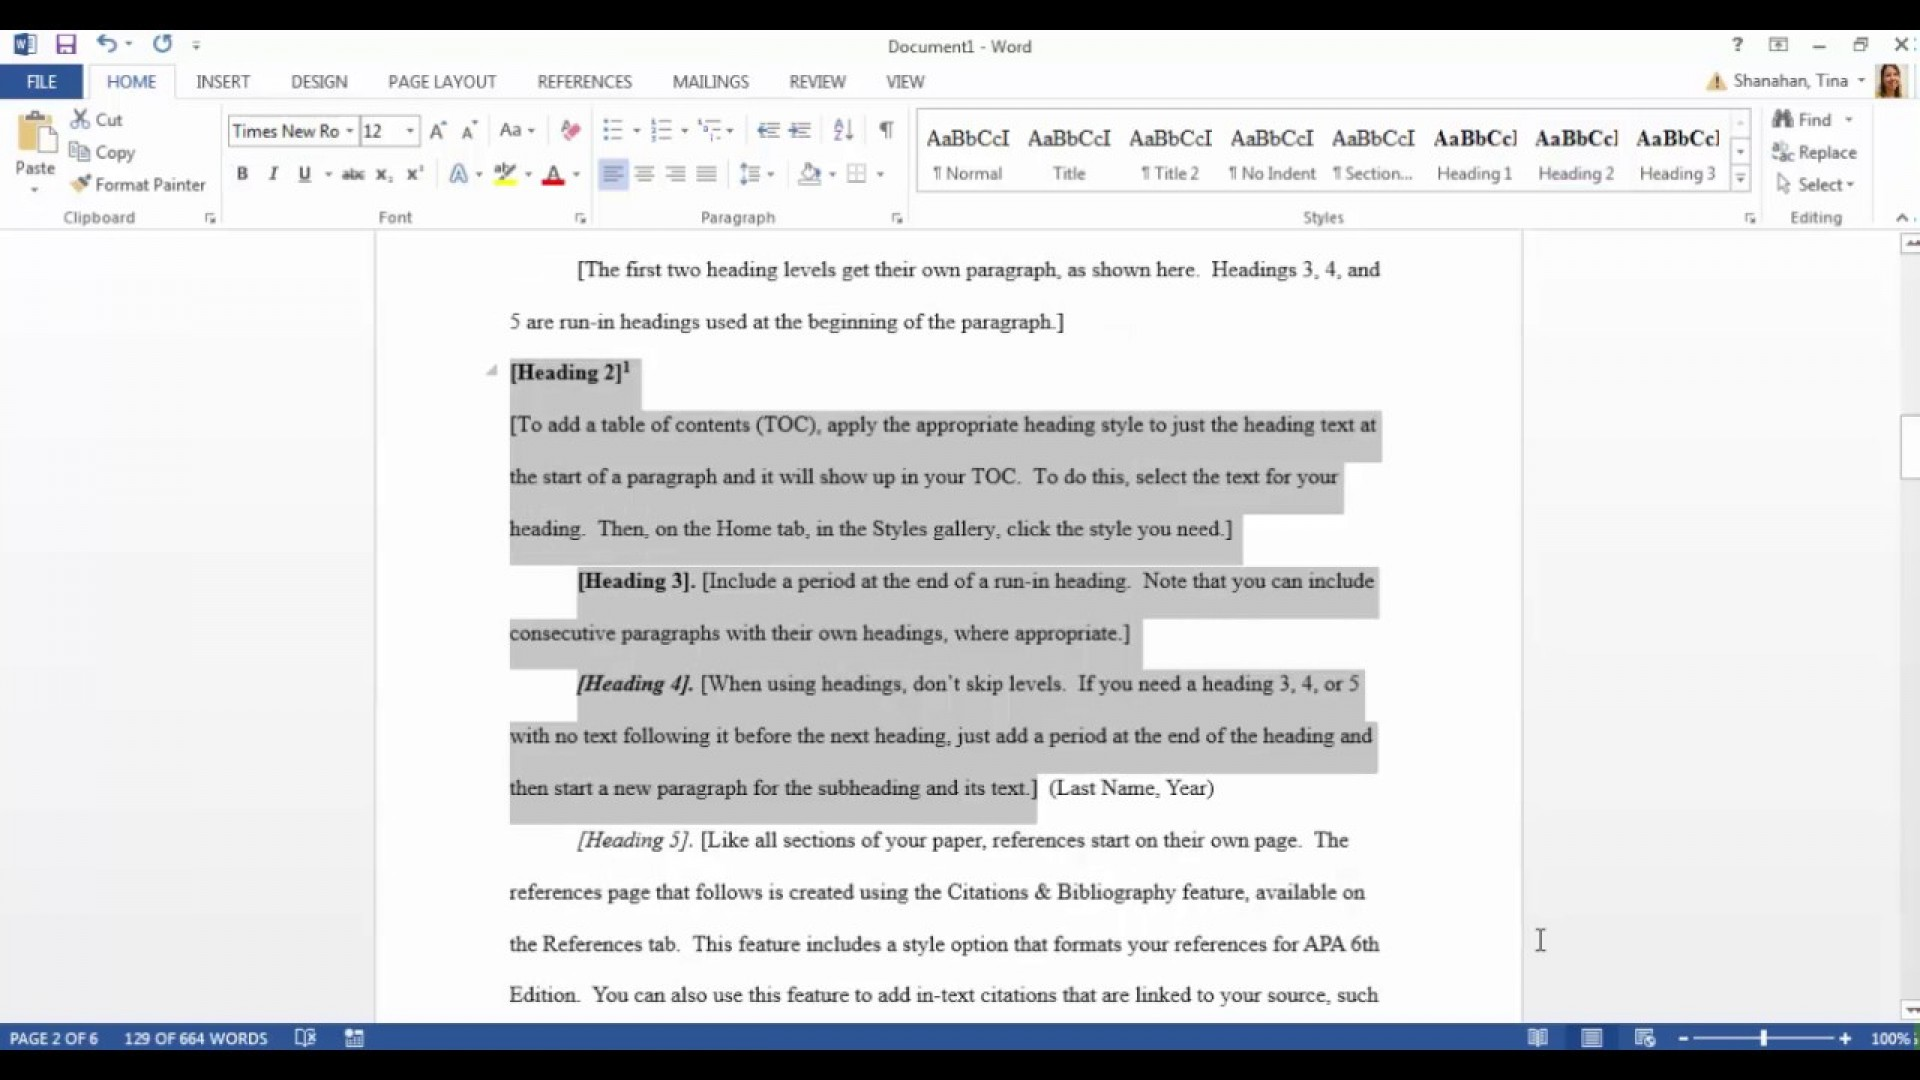 018 Maxresdefault Apa Essay Template Best Research Outline Word Paper 1920